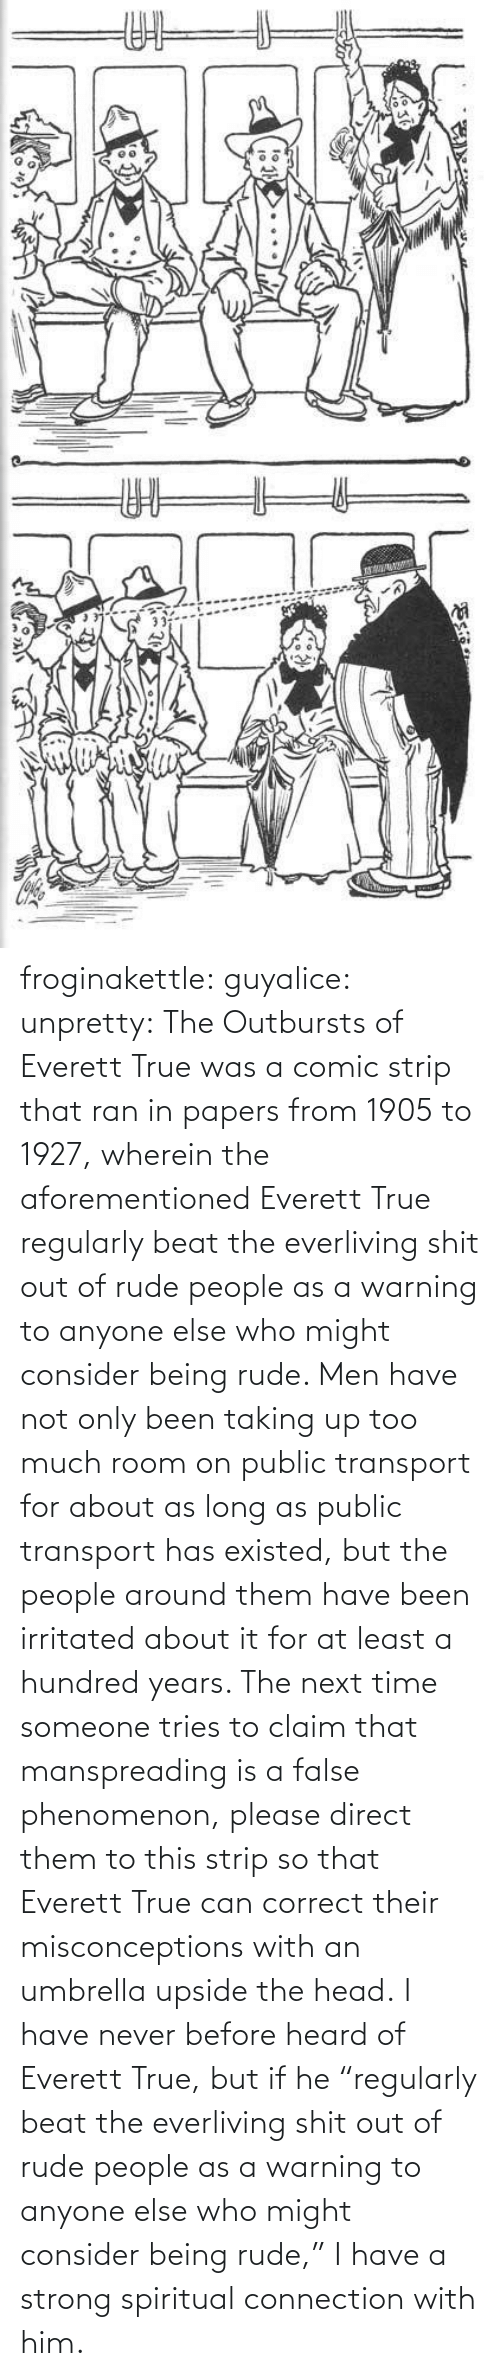 "Being Rude: ఇ  క froginakettle:  guyalice:  unpretty:  The Outbursts of Everett True was a comic strip that ran in papers from 1905 to 1927, wherein the aforementioned Everett True regularly beat the everliving shit out of rude people as a warning to anyone else who might consider being rude. Men have not only been taking up too much room on public transport for about as long as public transport has existed, but the people around them have been irritated about it for at least a hundred years. The next time someone tries to claim that manspreading is a false phenomenon, please direct them to this strip so that Everett True can correct their misconceptions with an umbrella upside the head.  I have never before heard of Everett True, but if he ""regularly beat the everliving shit out of rude people as a warning to anyone else who might consider being rude,"" I have a strong spiritual connection with him."